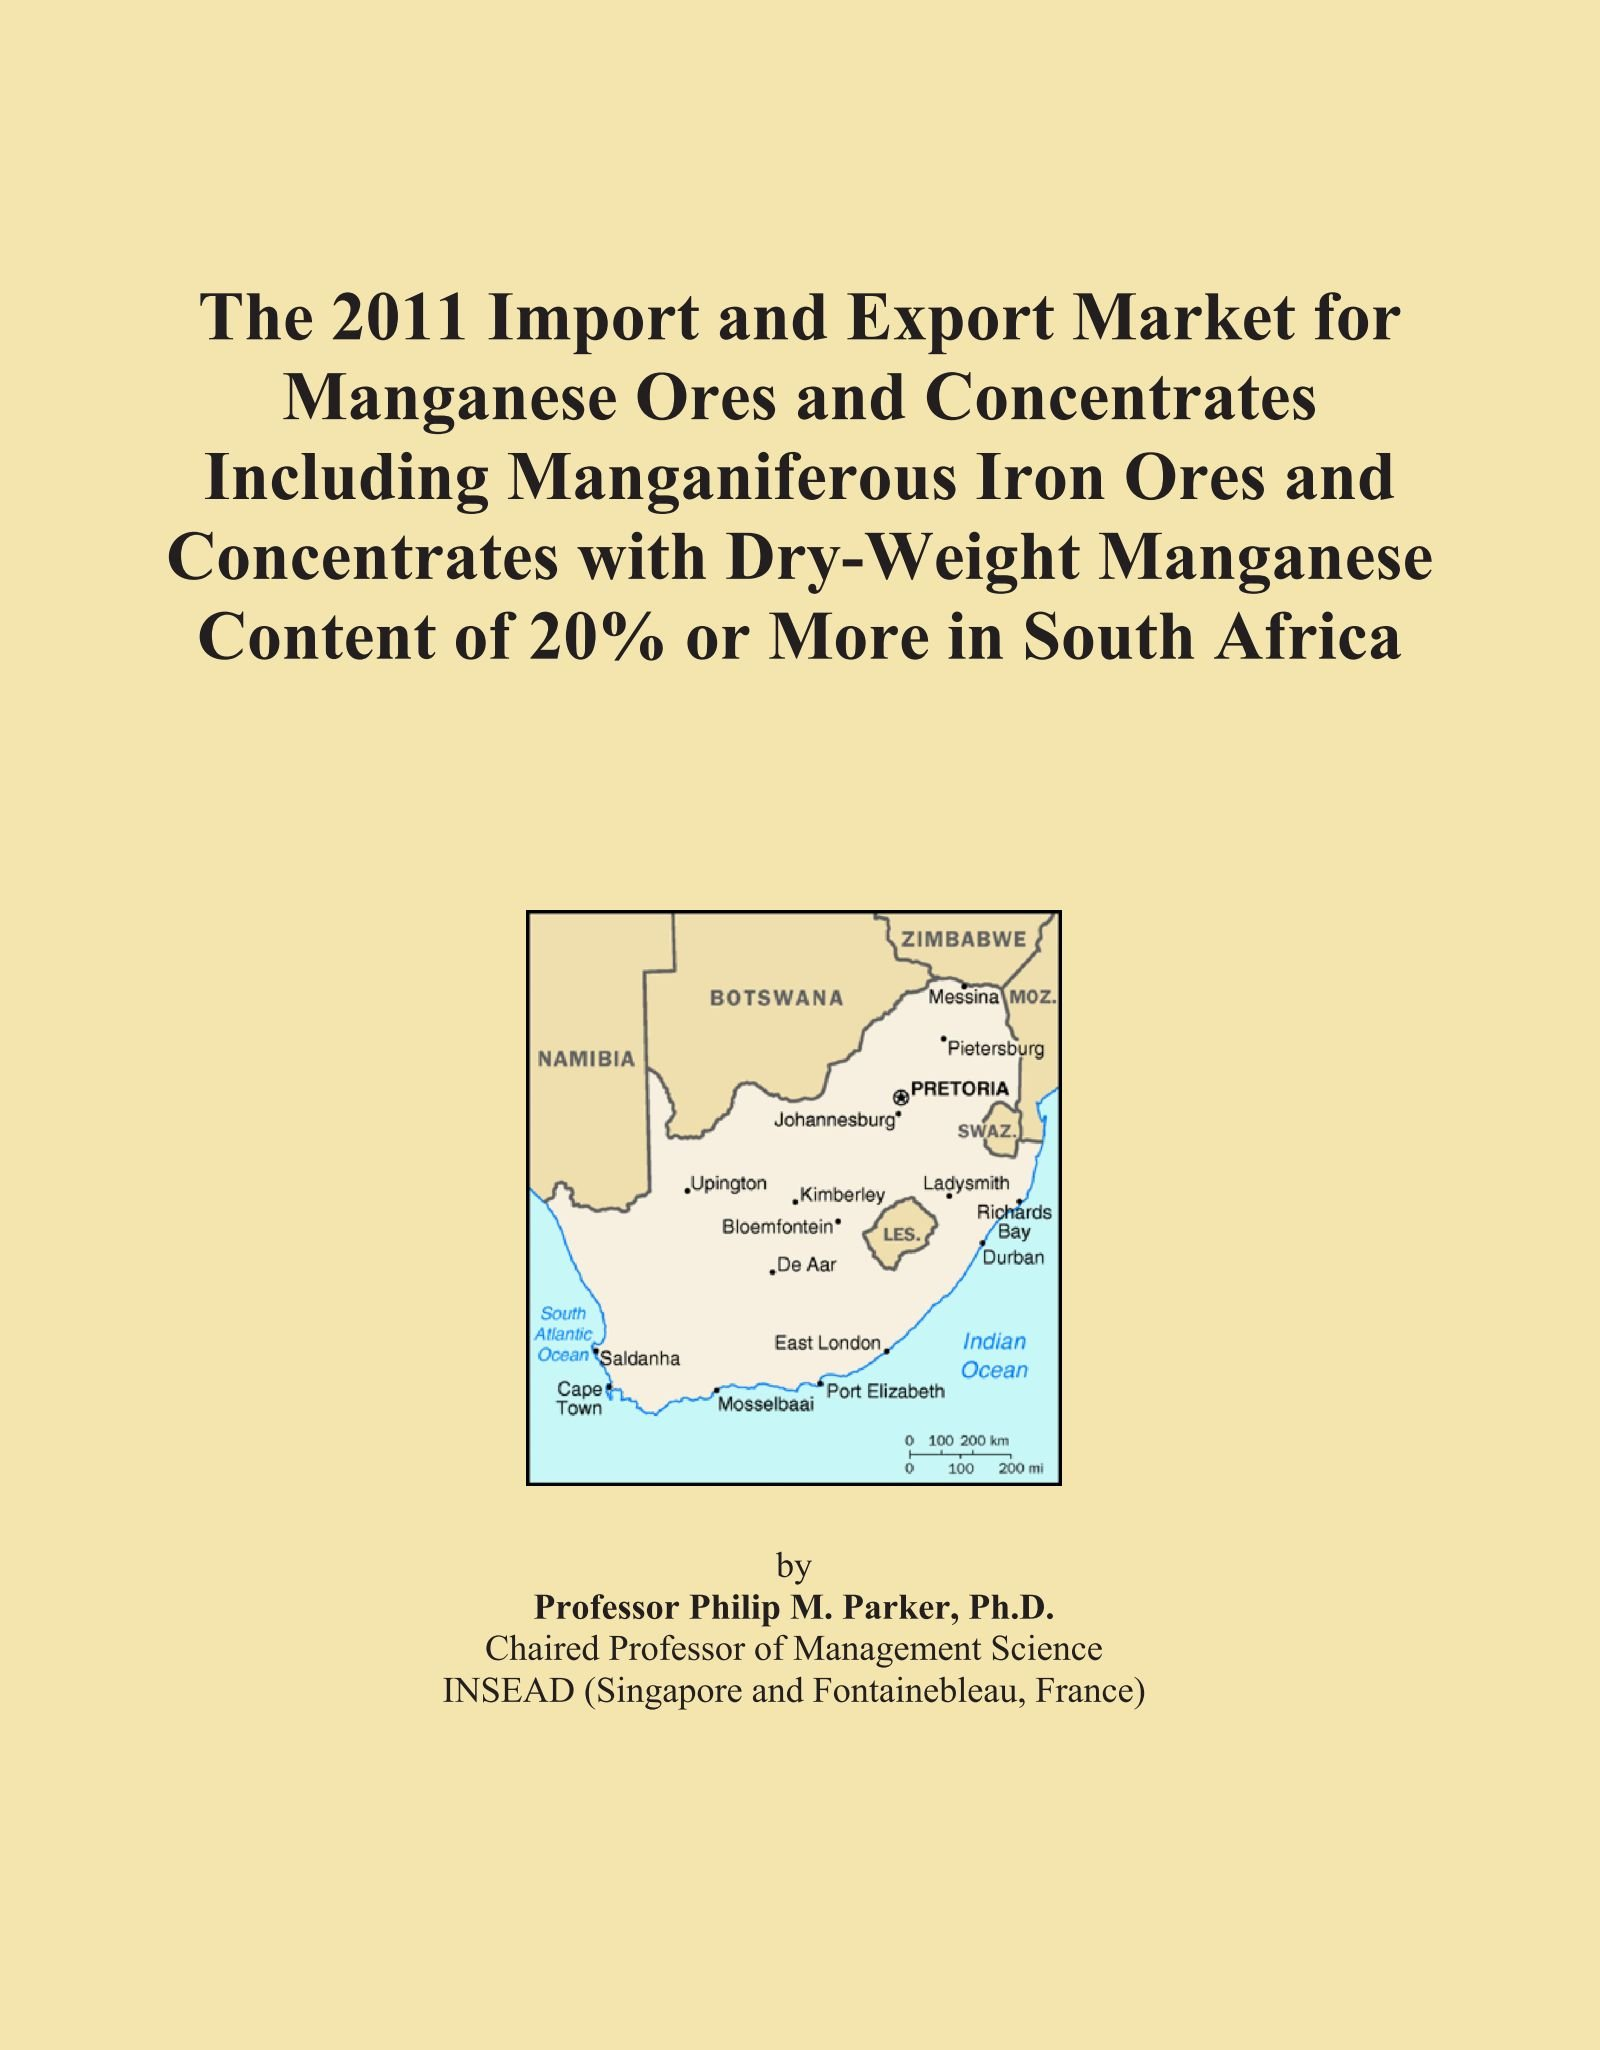 The 2011 Import and Export Market for Manganese Ores and Concentrates Including Manganiferous Iron Ores and Concentrates with Dry-Weight Manganese Content of 20% or More in South Africa ebook